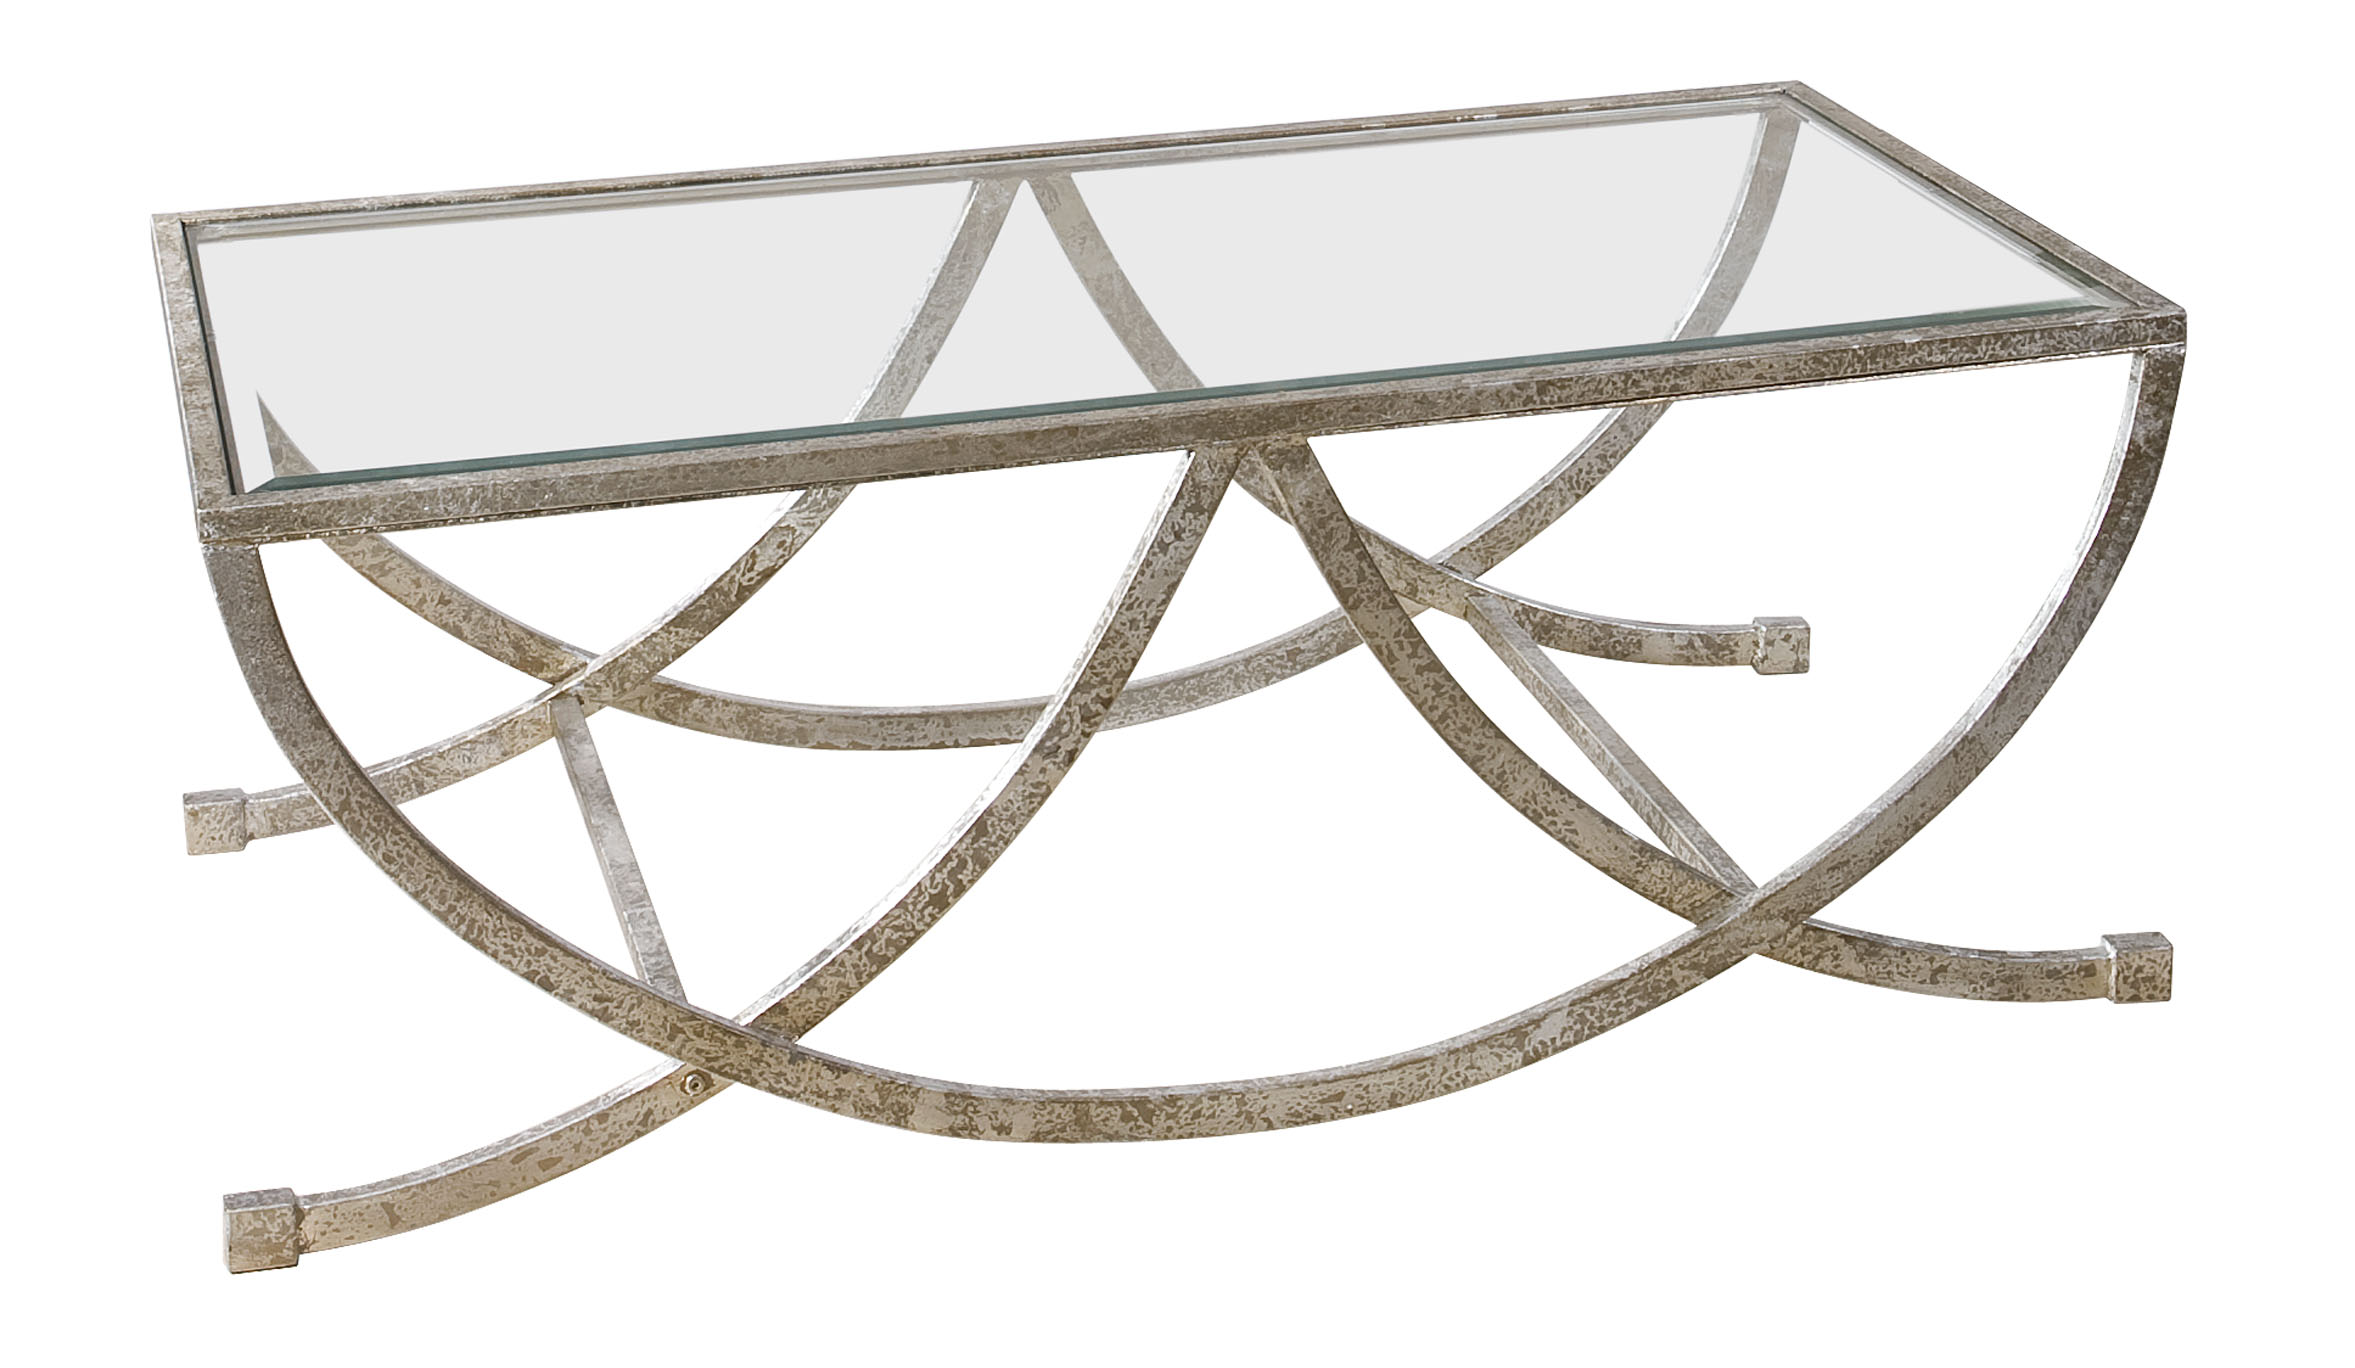 Uttermost Accent Furniture Marta Antiqued Silver Coffee Table - Item Number: 24593